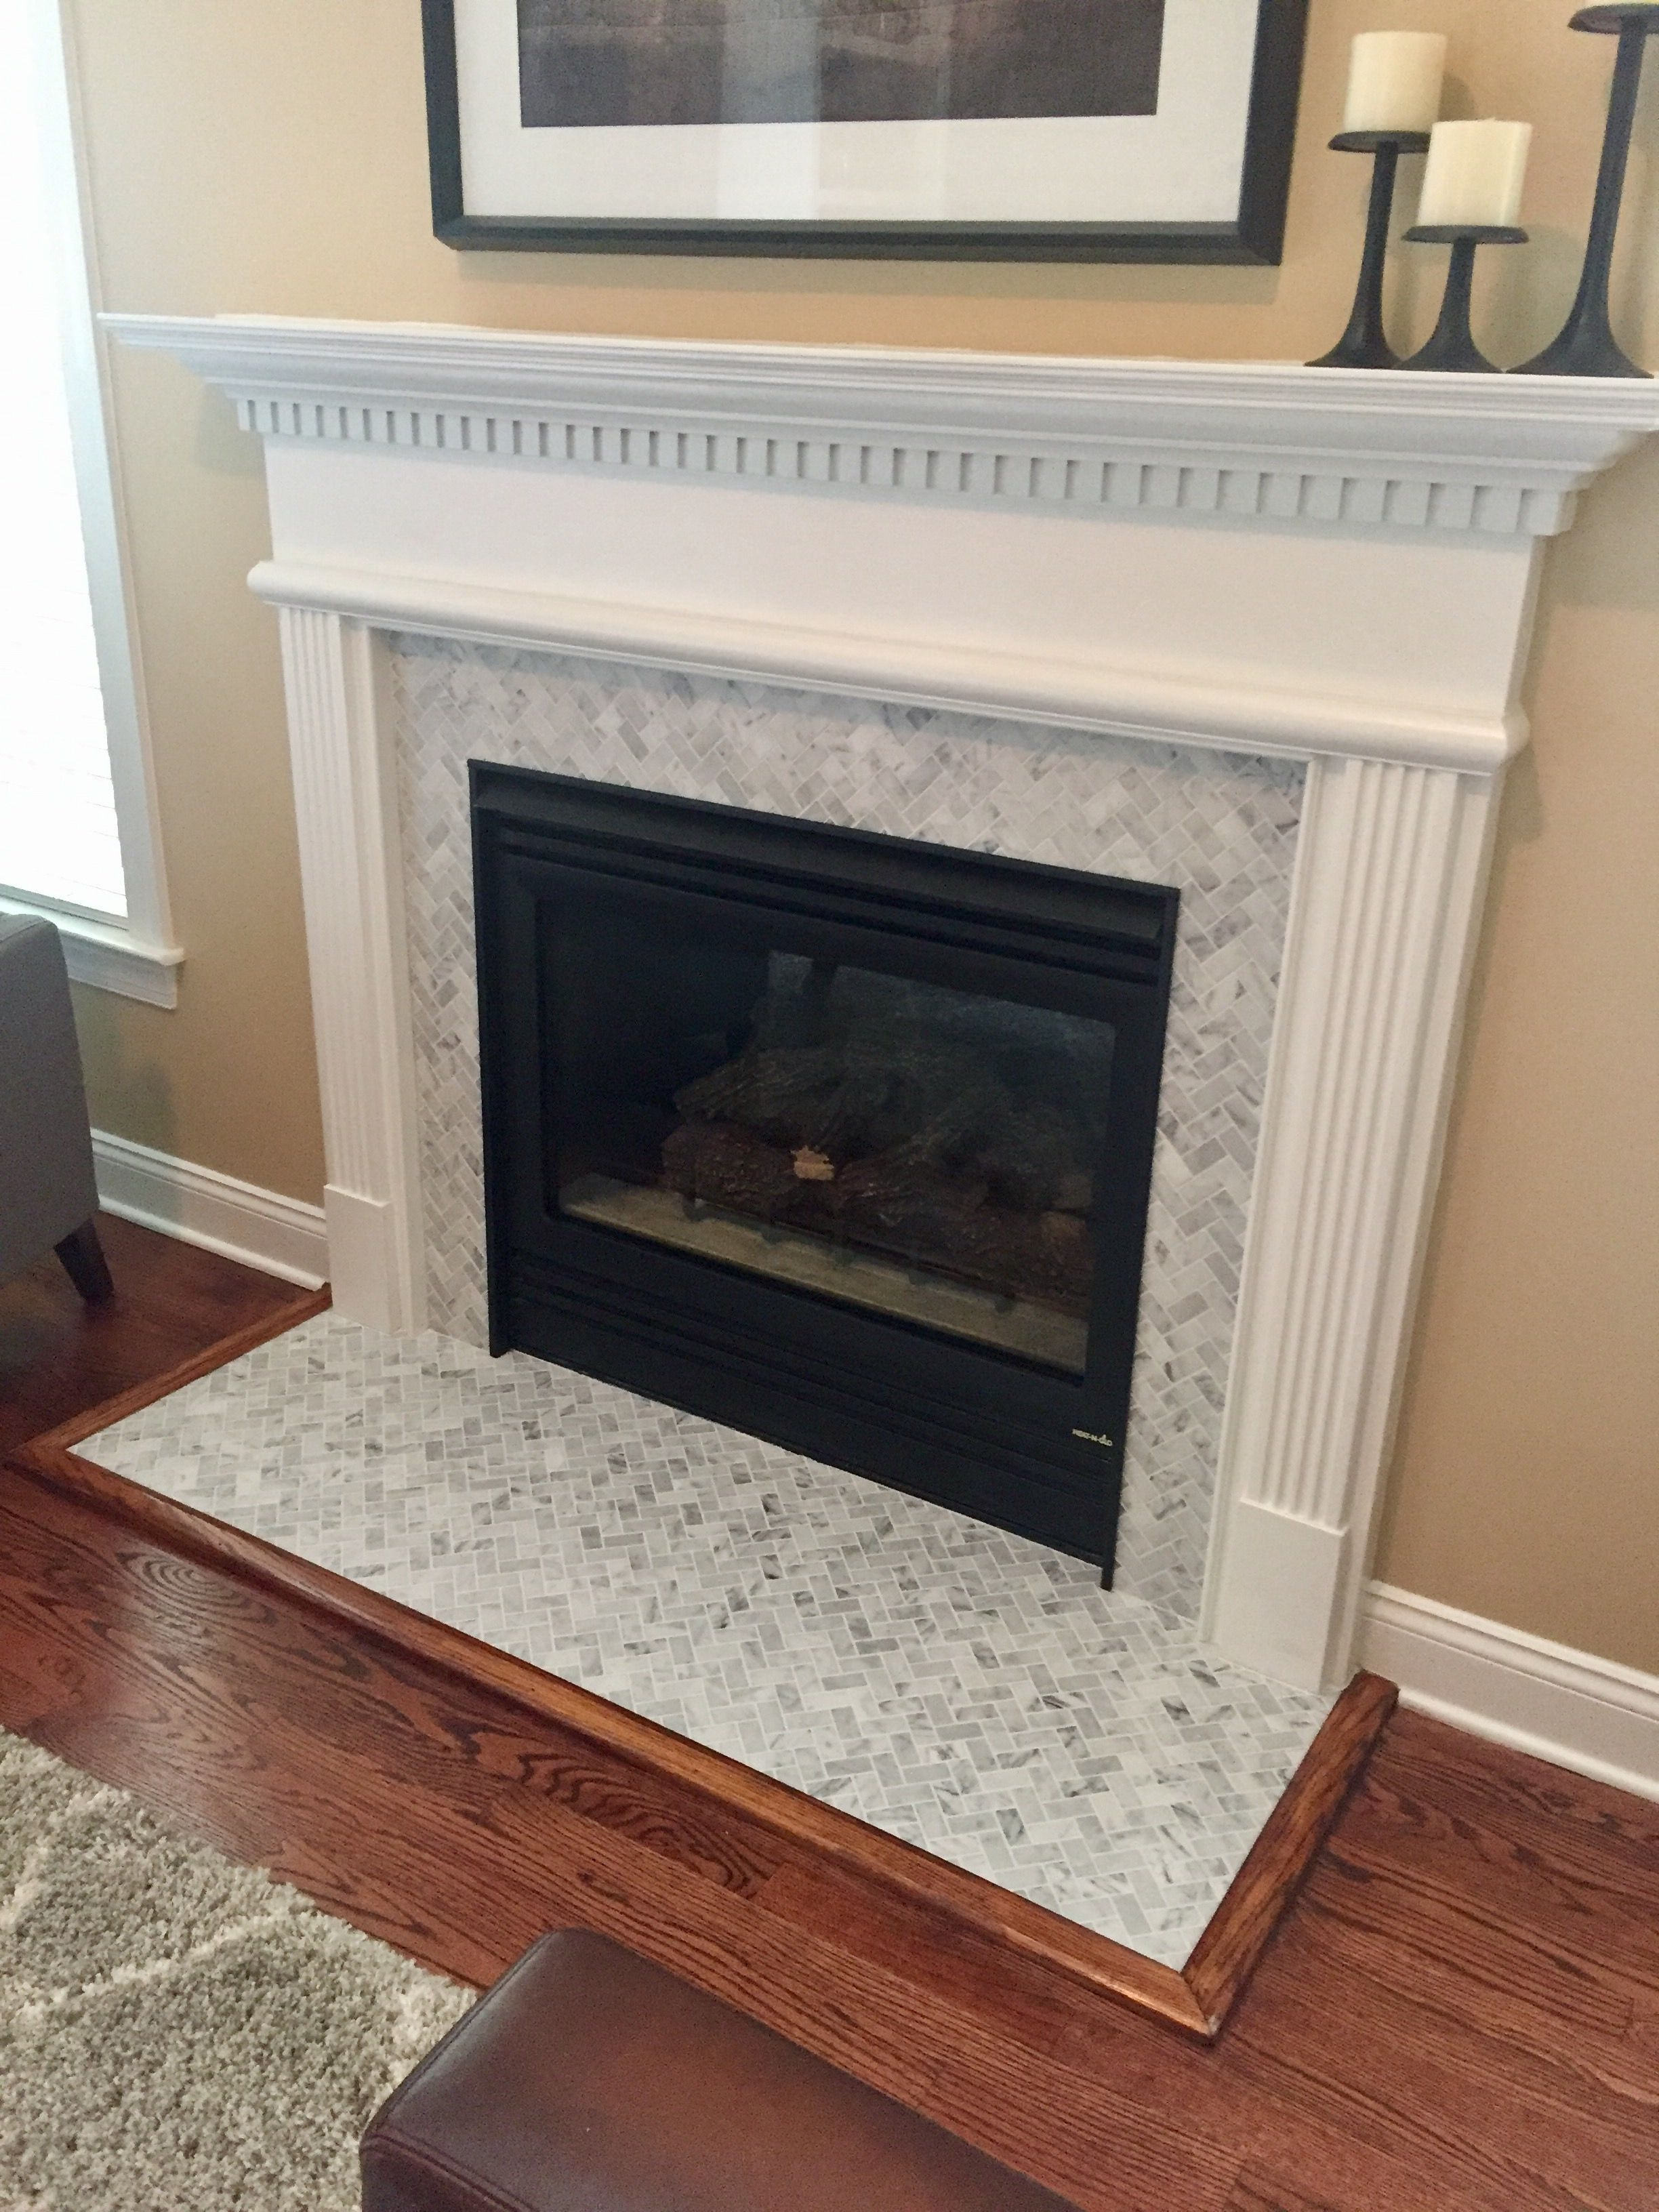 2X1 Italian Marble Herringbone Tile Fireplace Renovation